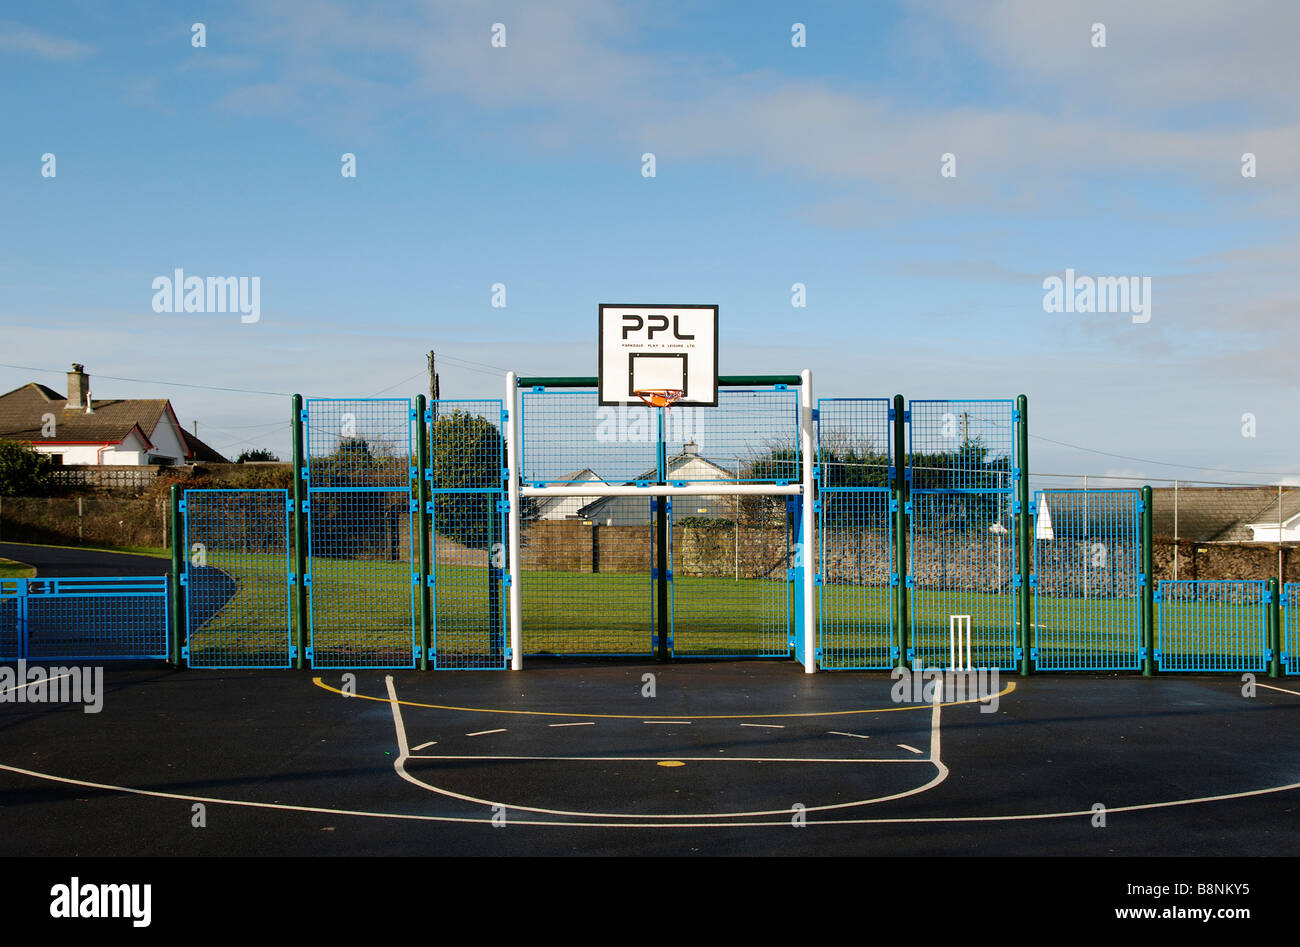 an outdoor all weather sports pitch in camborne,cornwall,uk - Stock Image